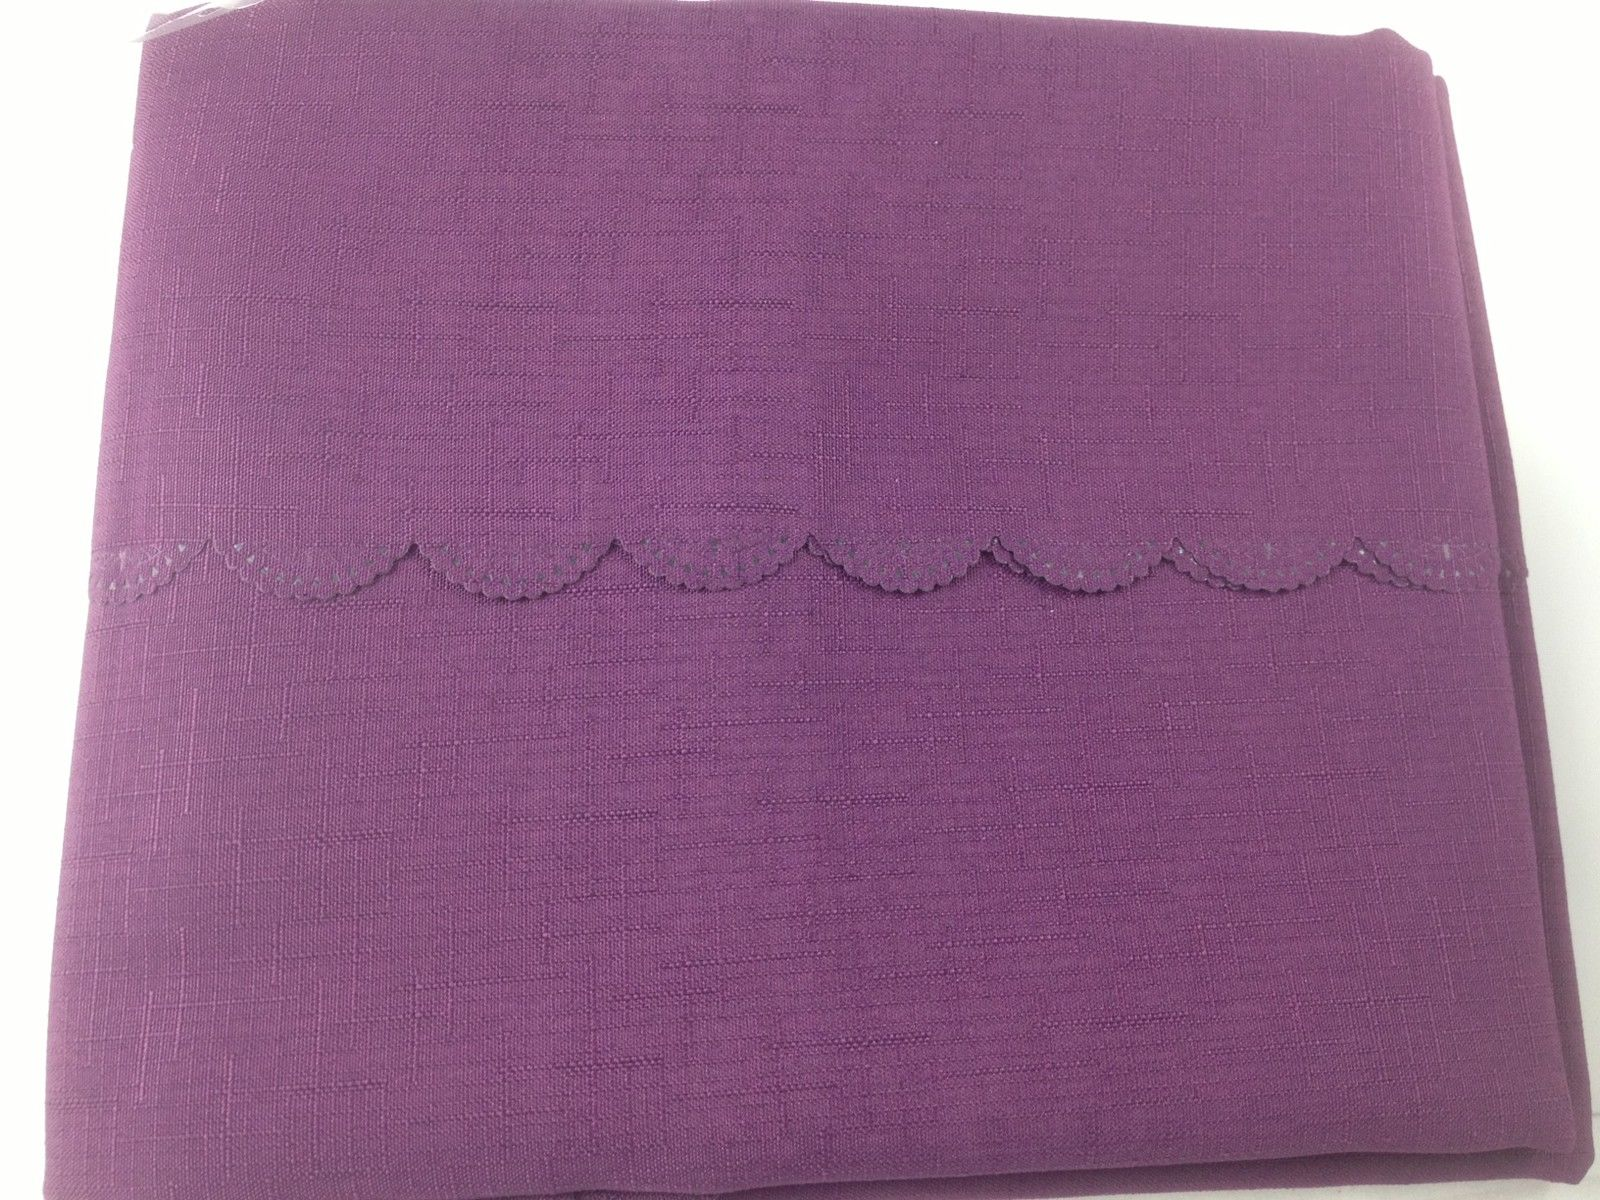 Shell Tablecloth Aubergine 137x178cm Oval